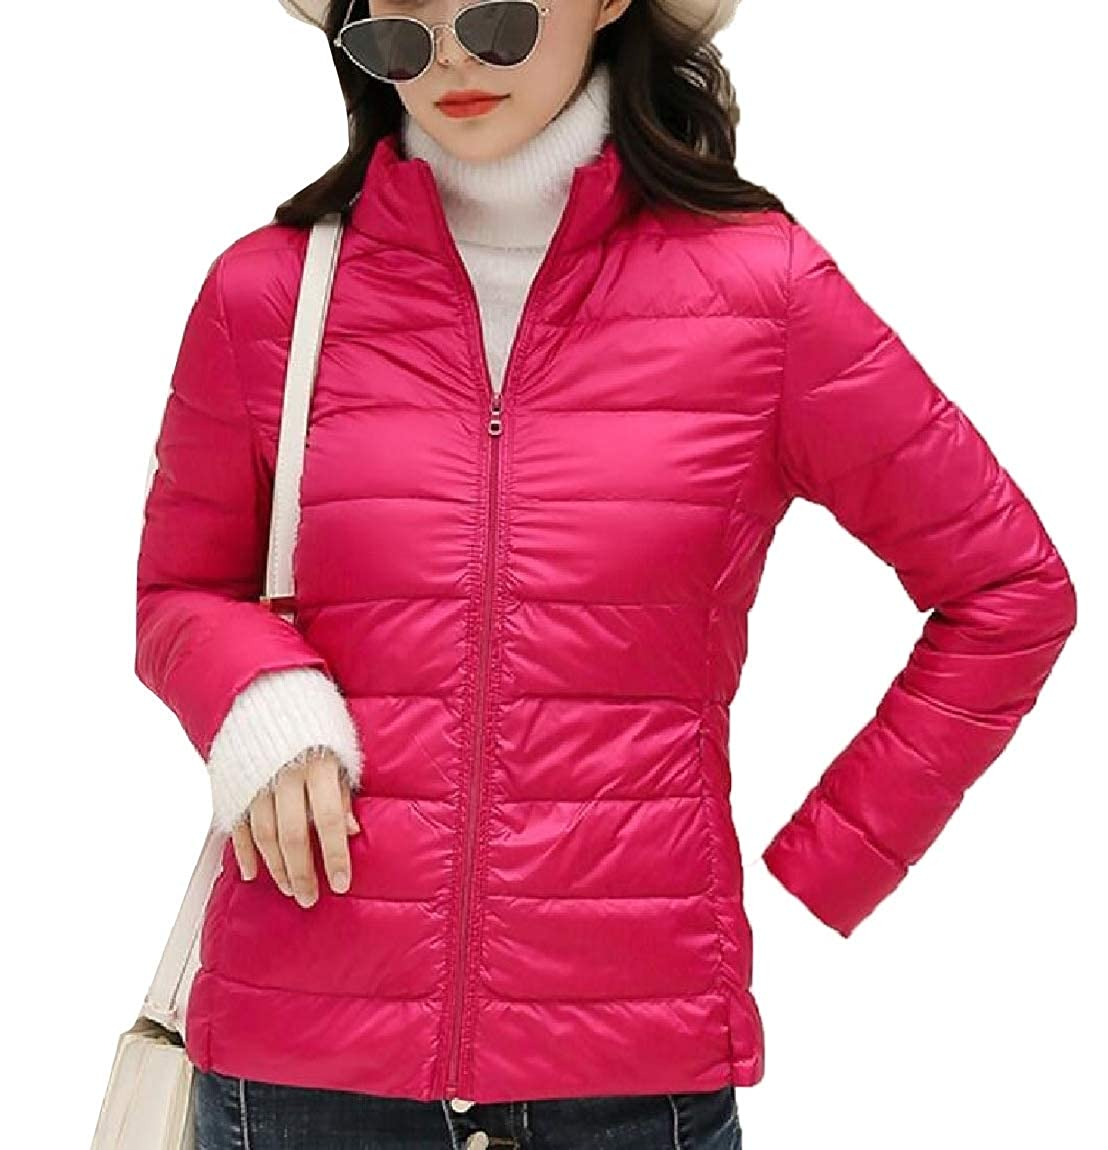 2 omniscient Women Lightweight Solid Stand Collar Long Sleeve Down Jacket